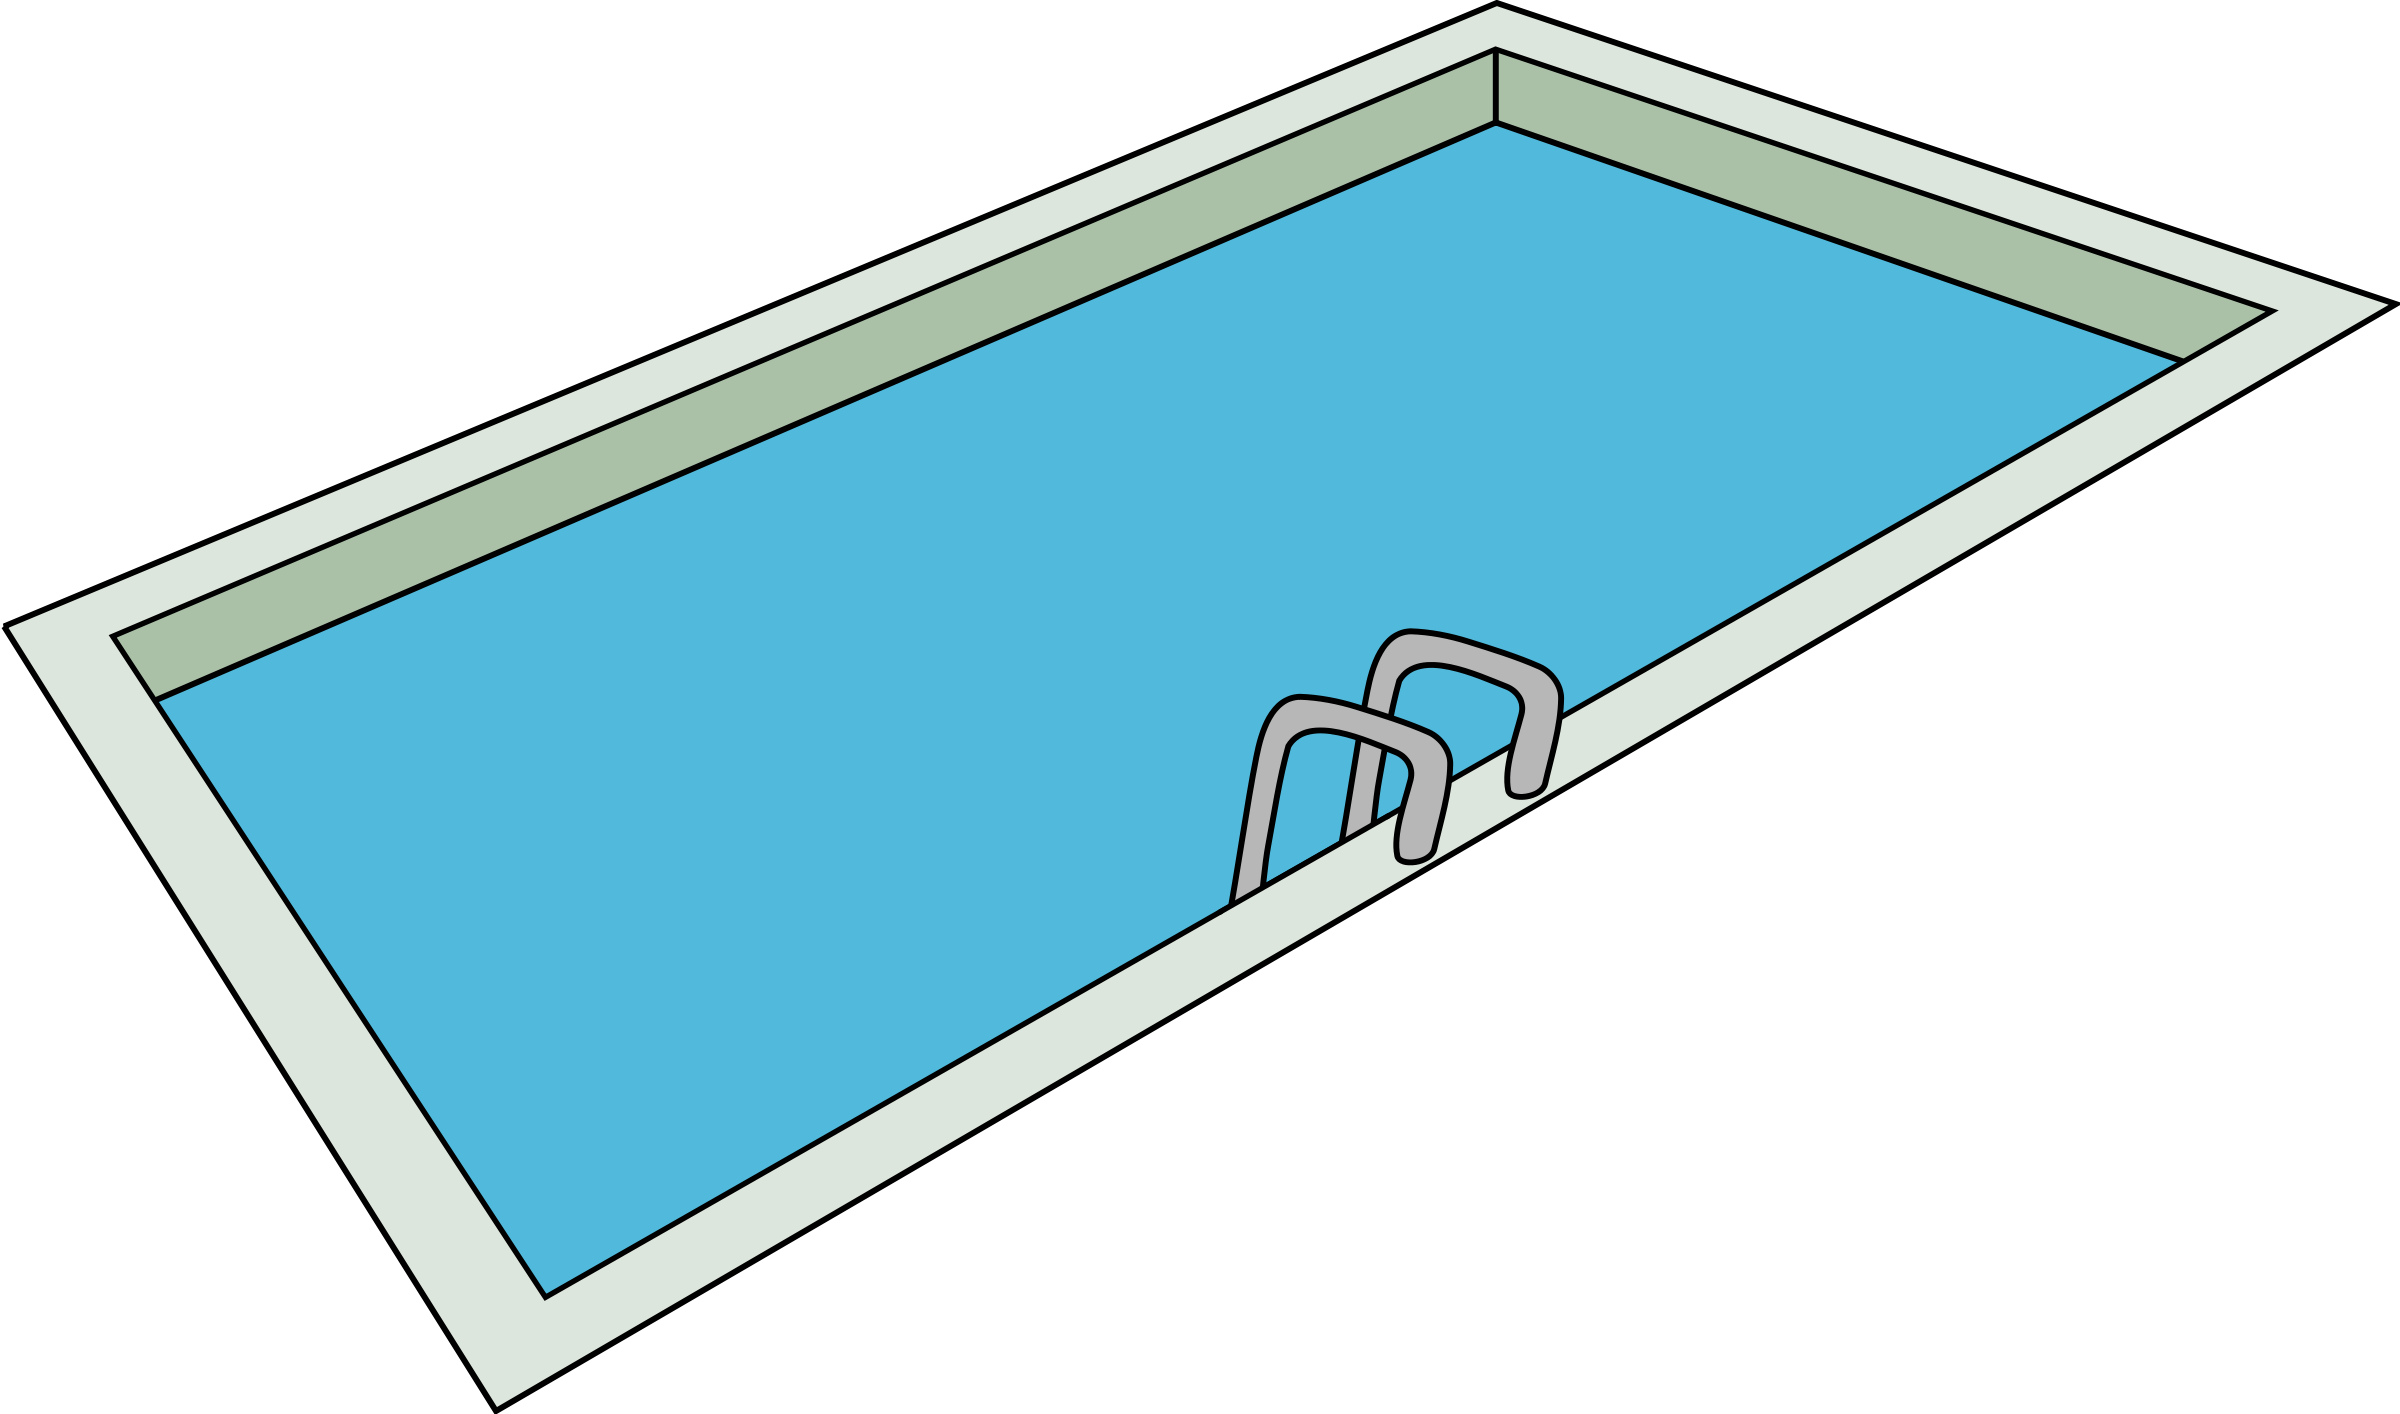 Swimming pool clipart.